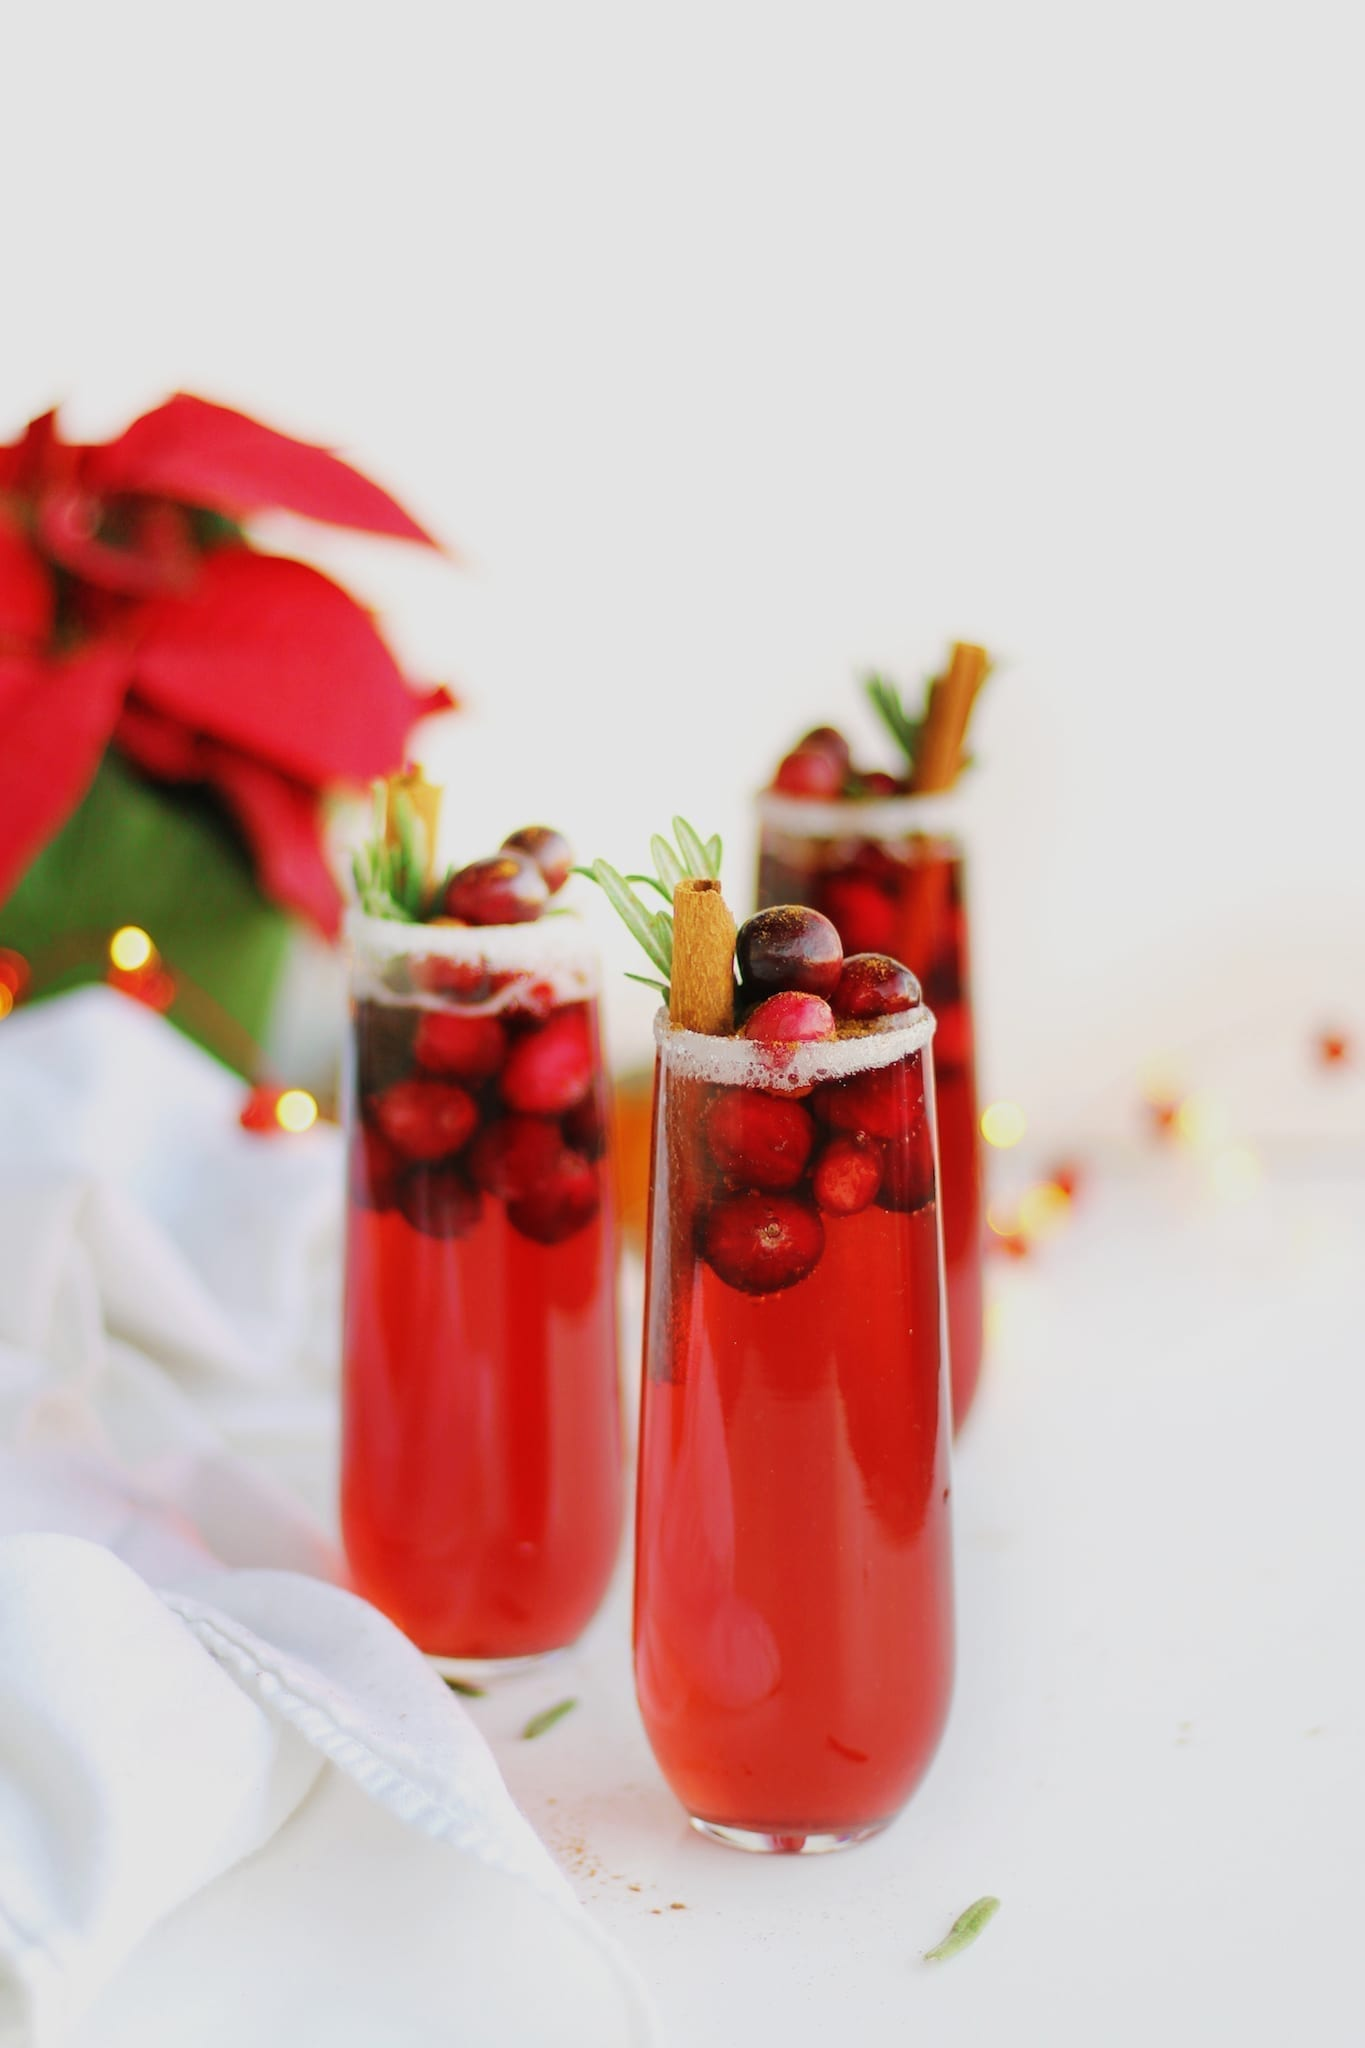 Vegan holiday recipes, orange cranberry mimosa mocktail